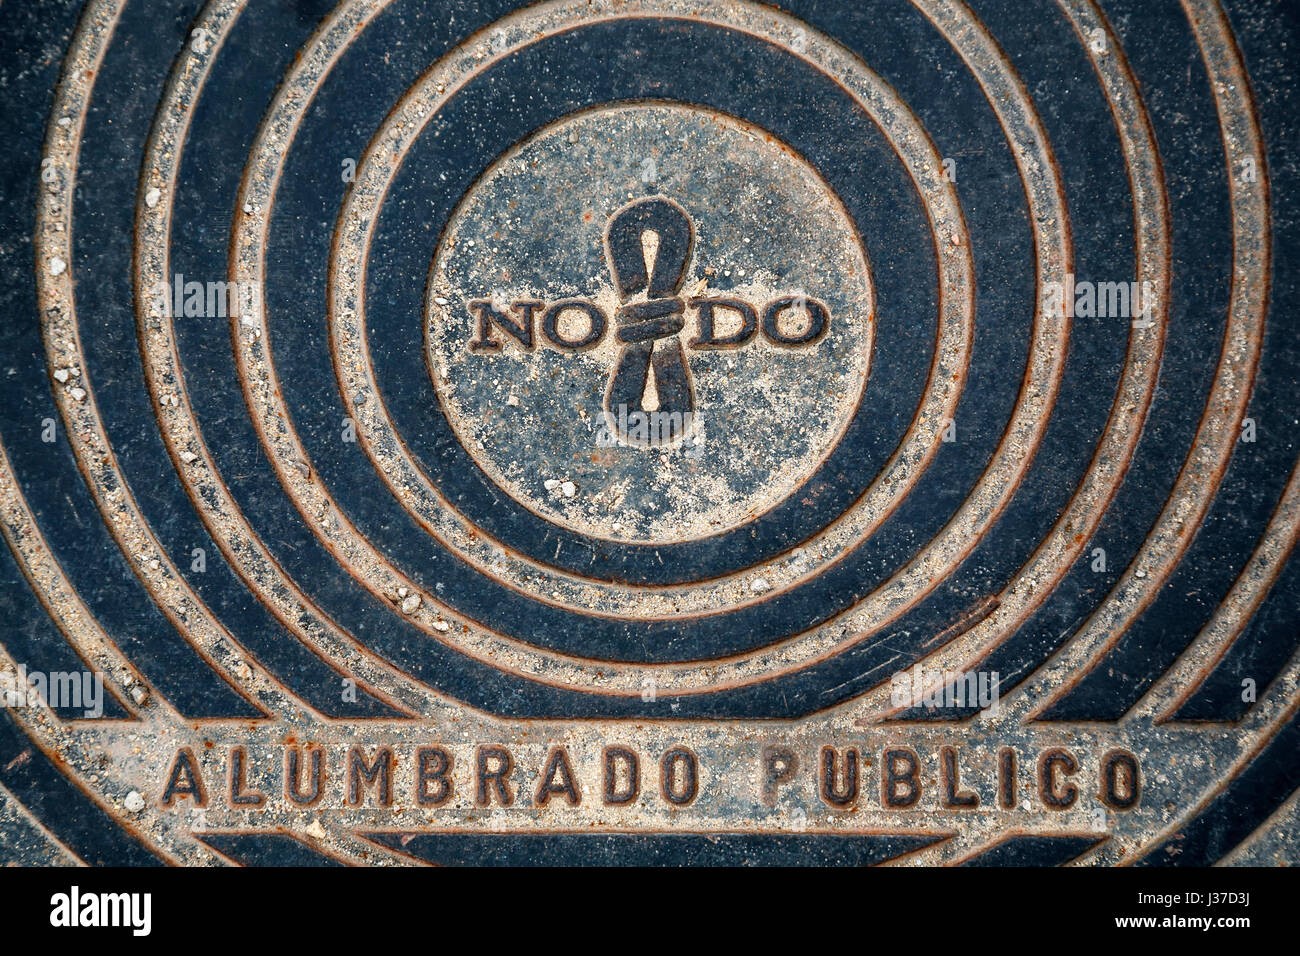 NO8DO utility manhole cover, Seville, Spain - Stock Image